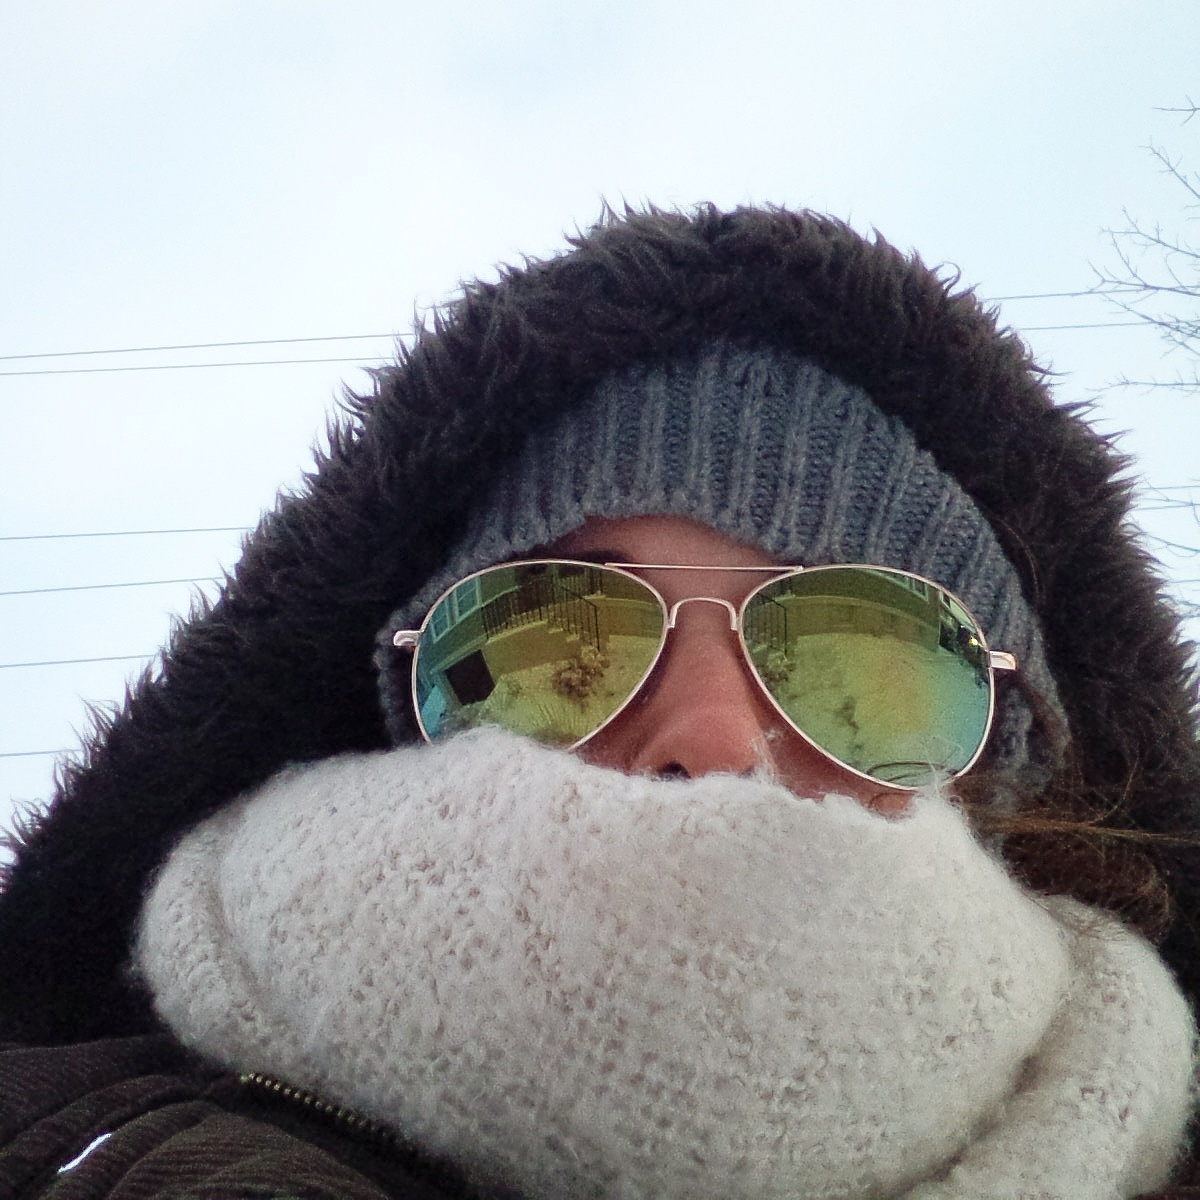 Newfoundland is cold